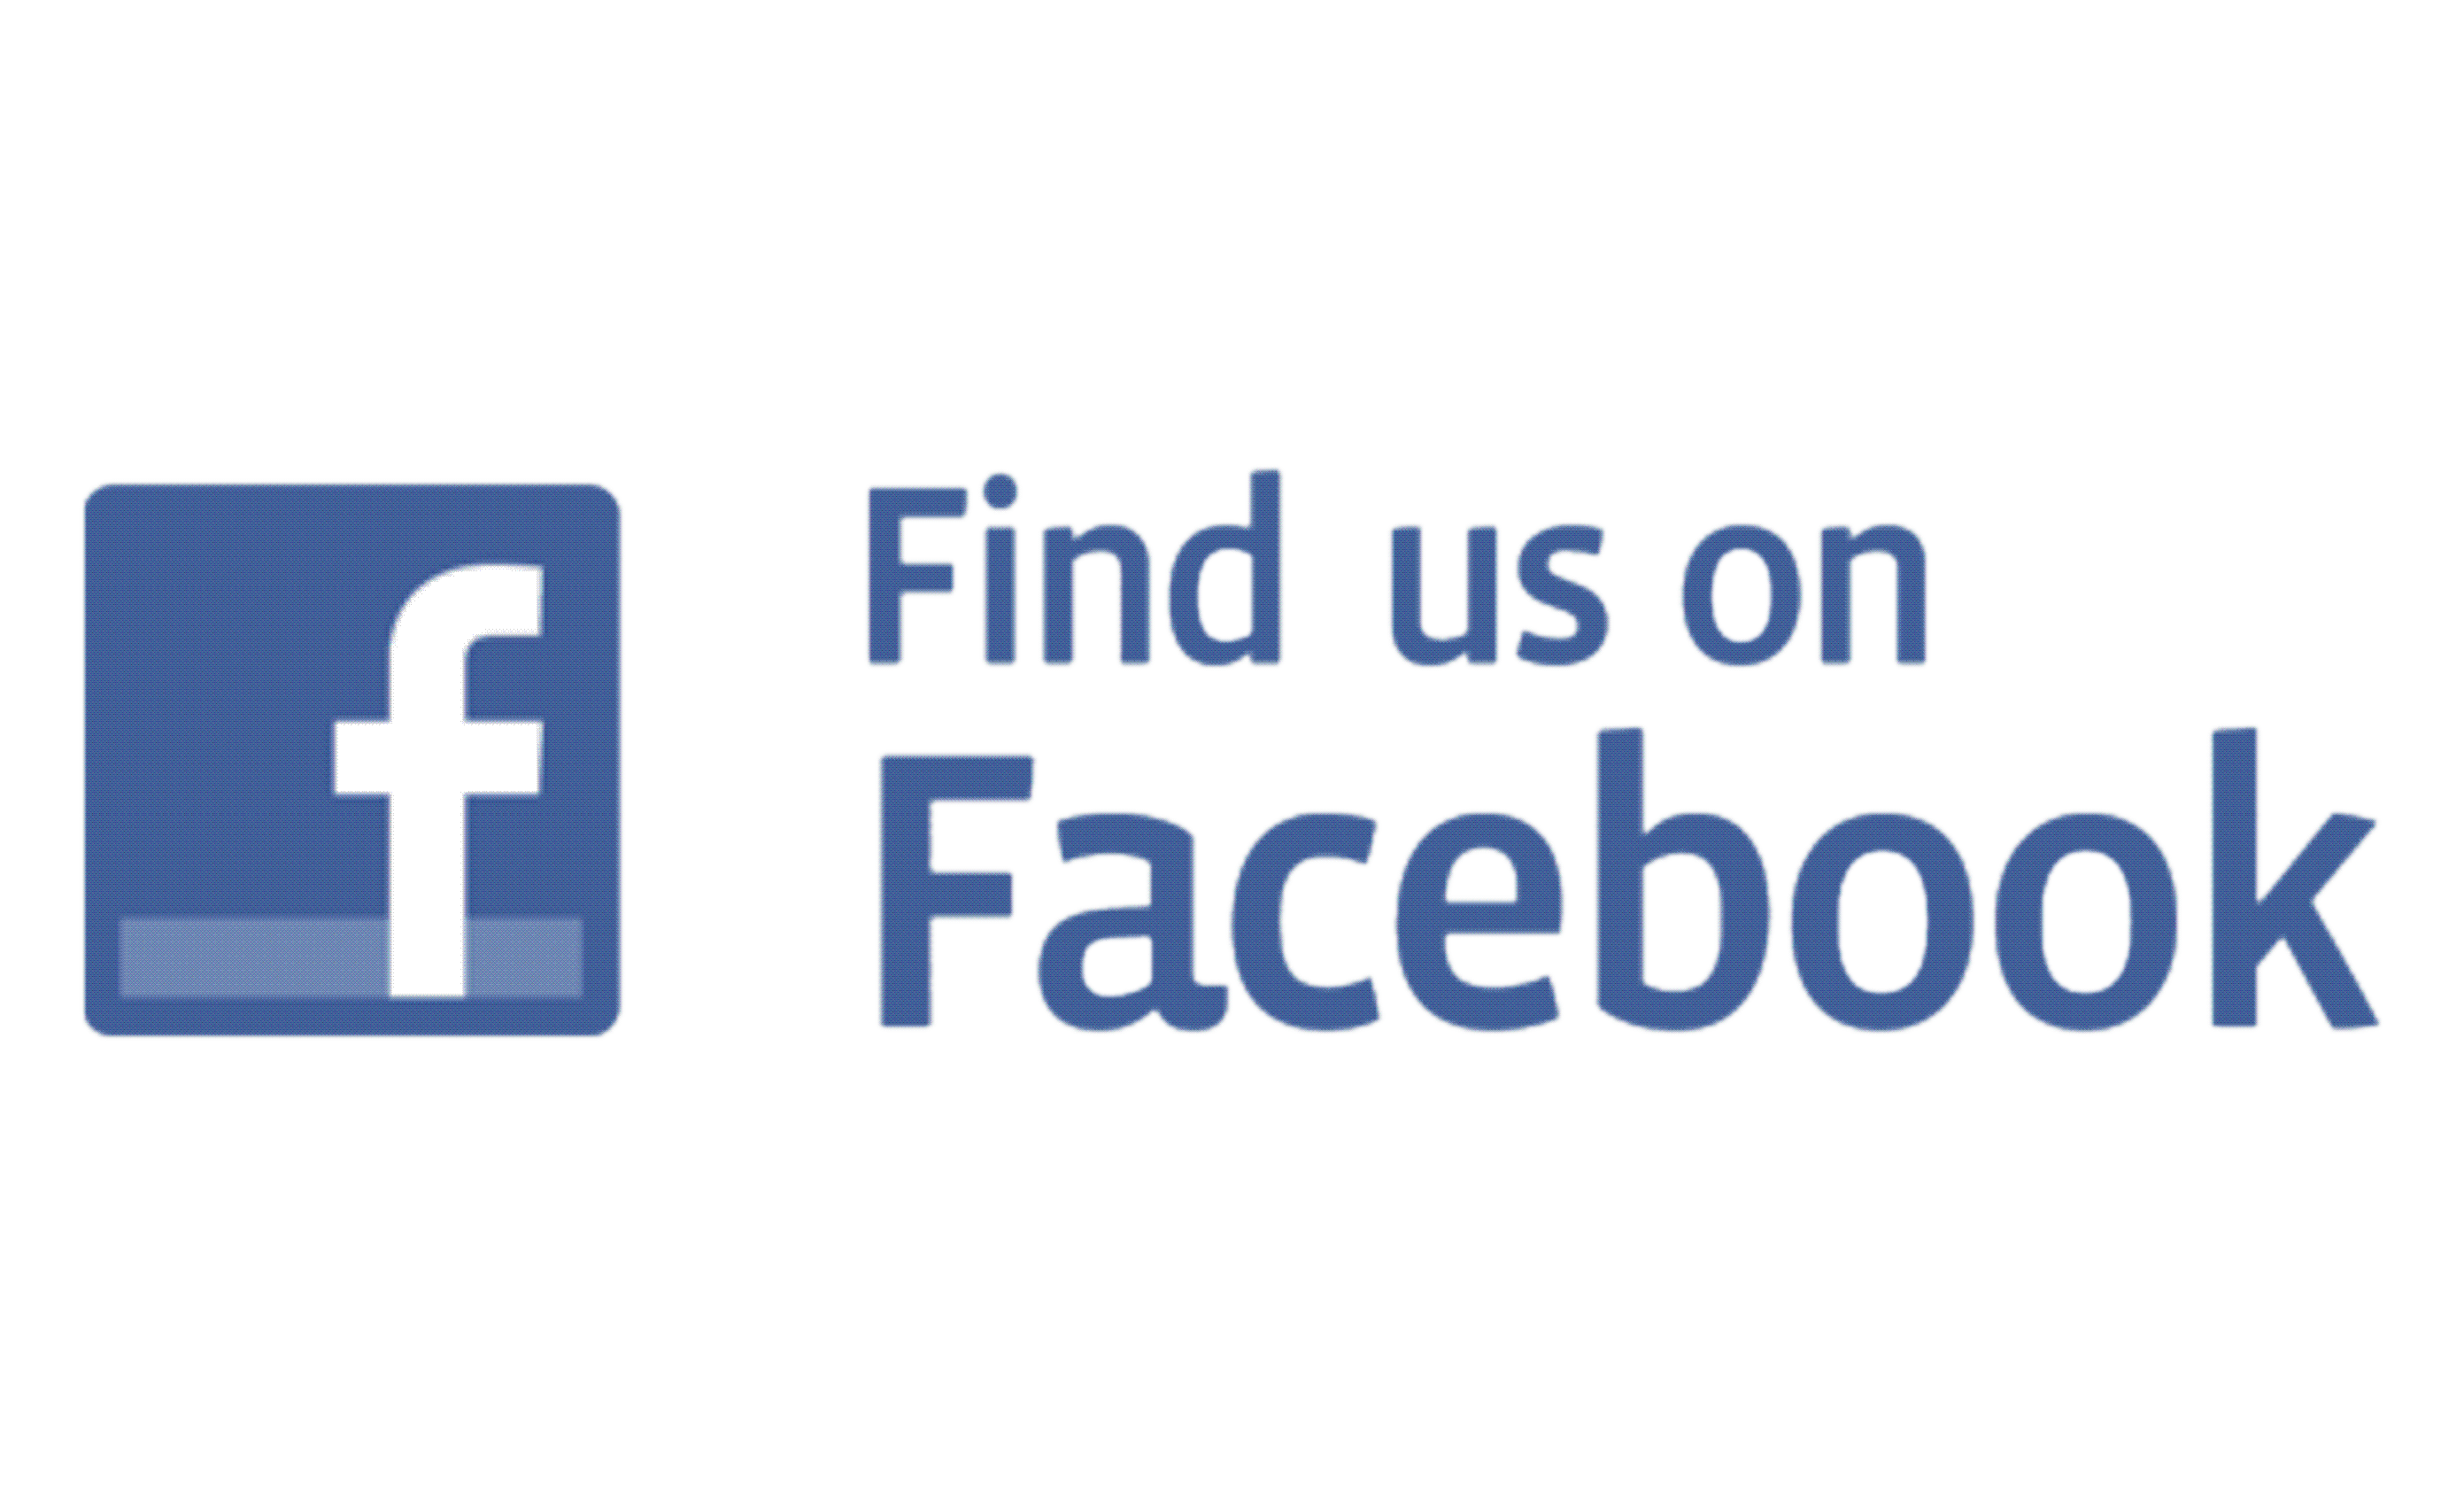 Like us on facebook png. Find transparent stickpng download